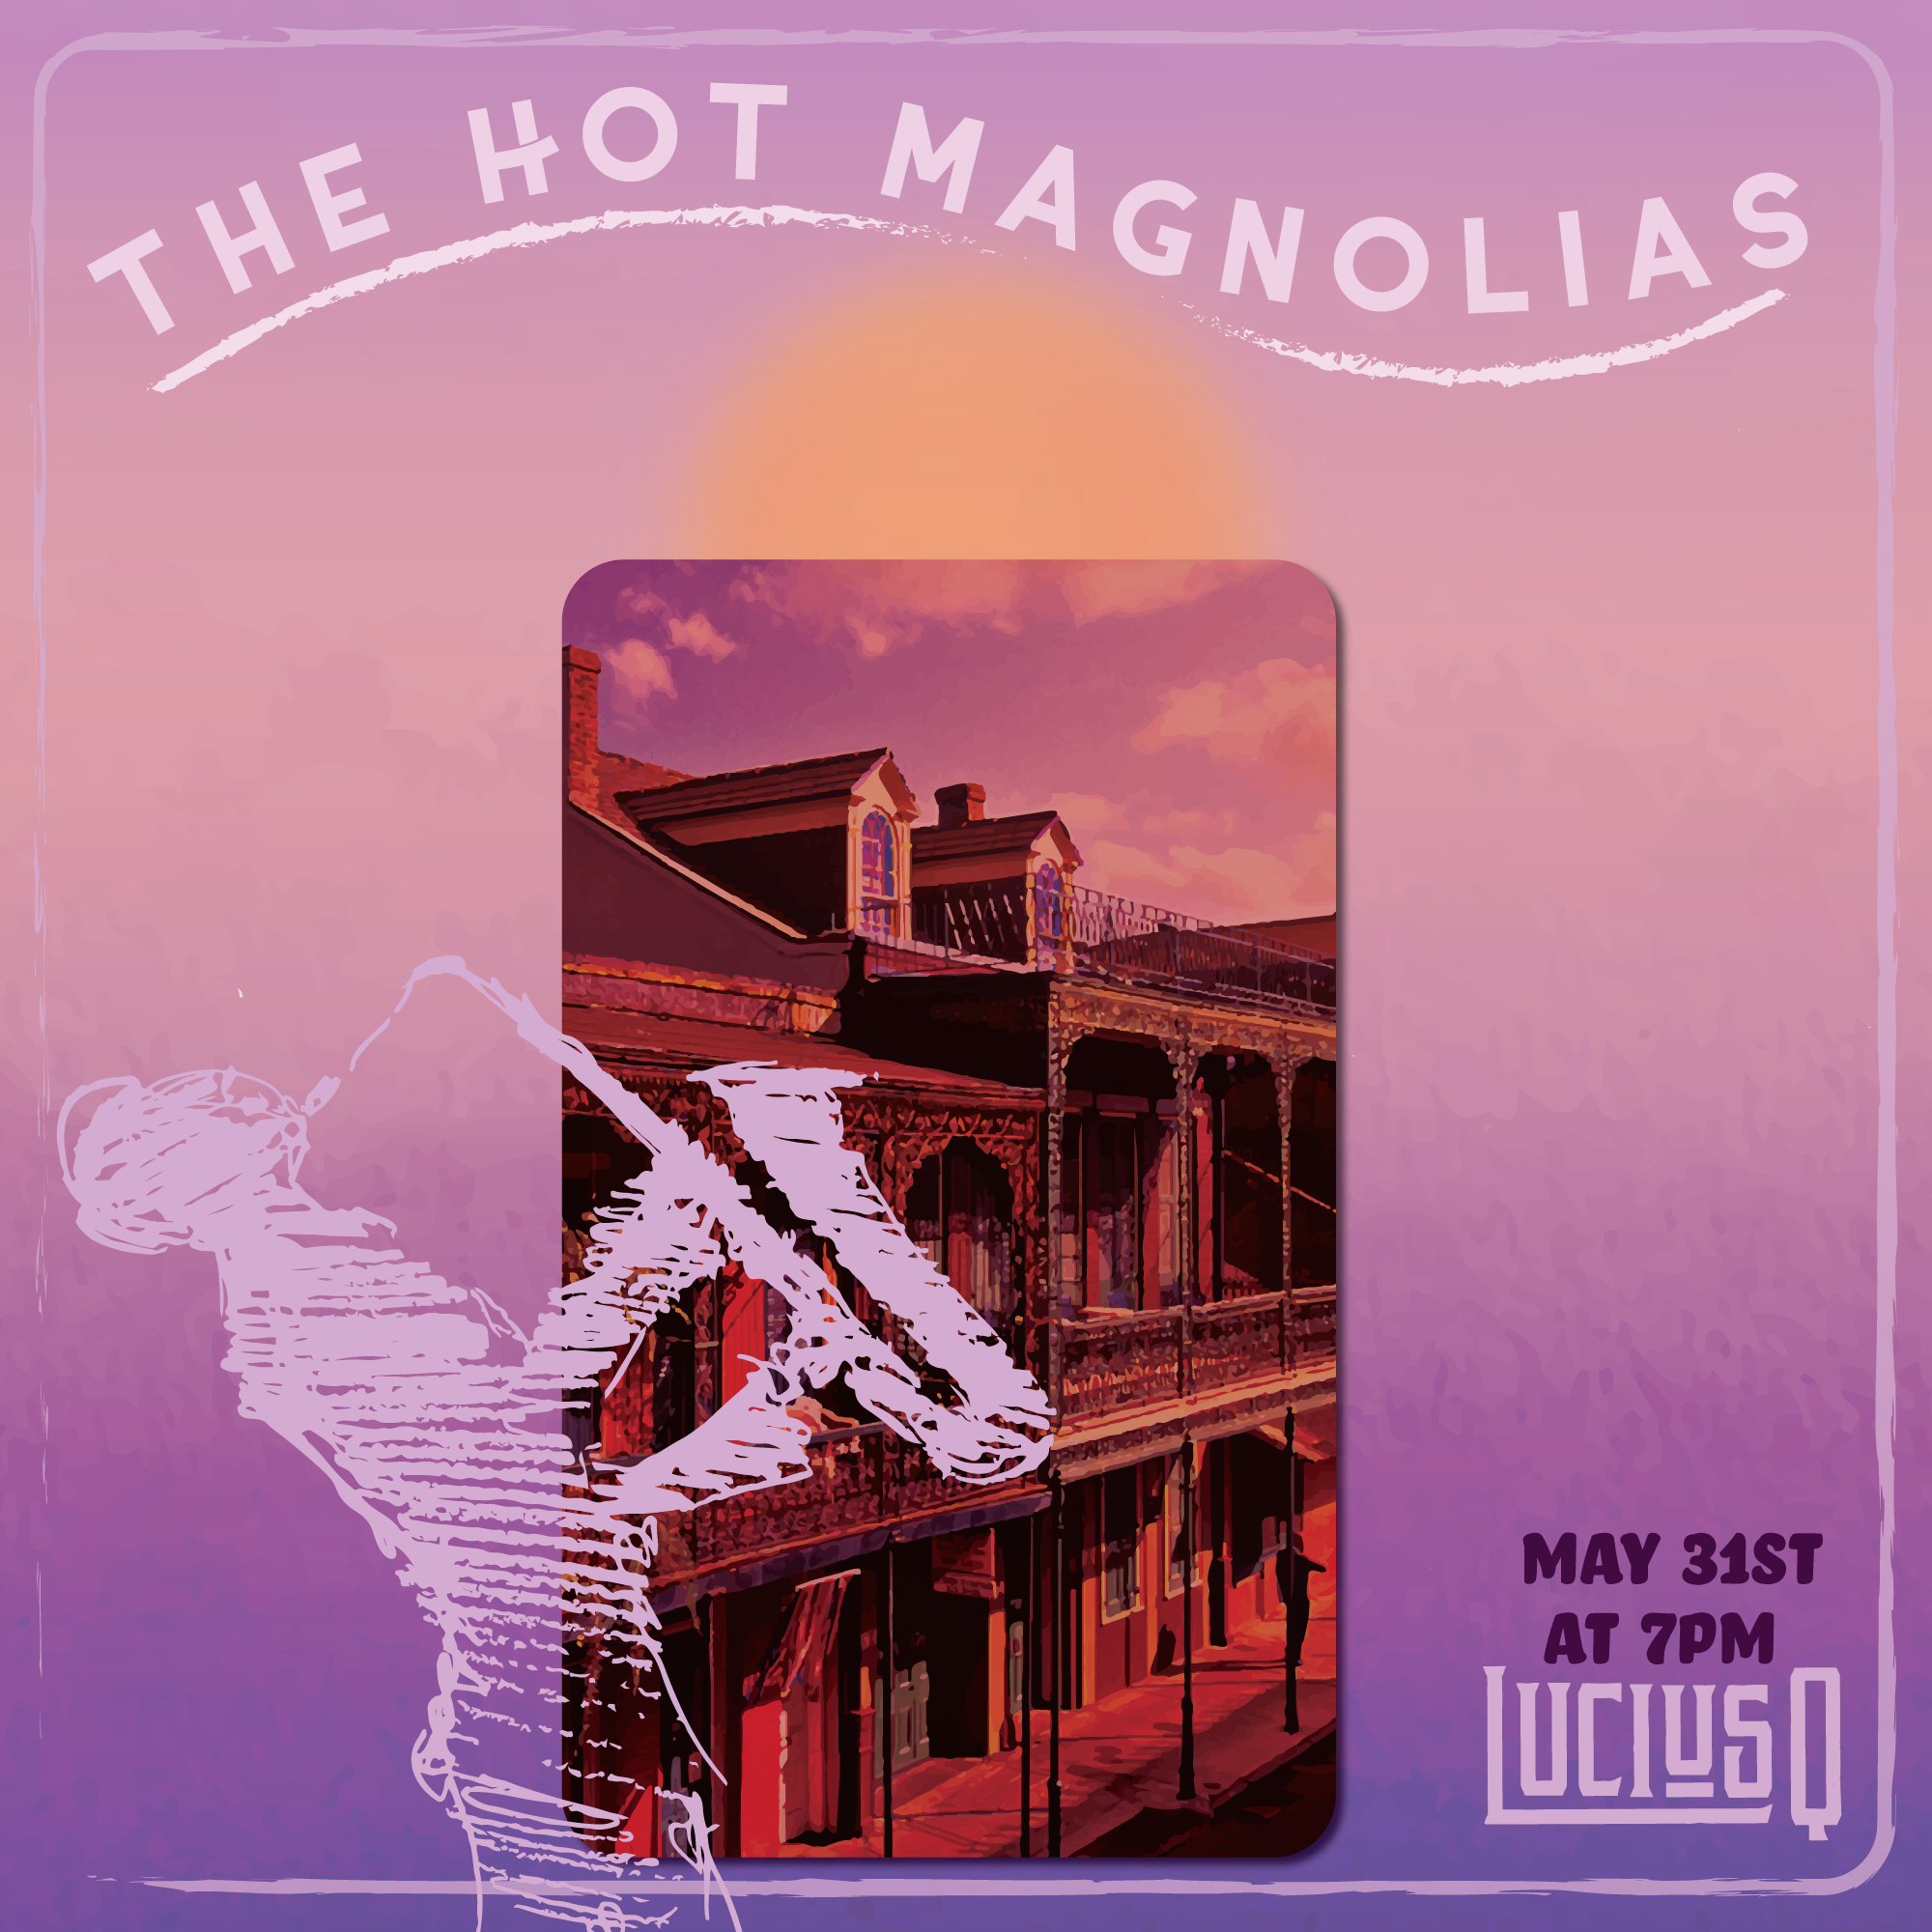 FiR-Creative---LuciusQ---The-Hot-Magnolias---May.png